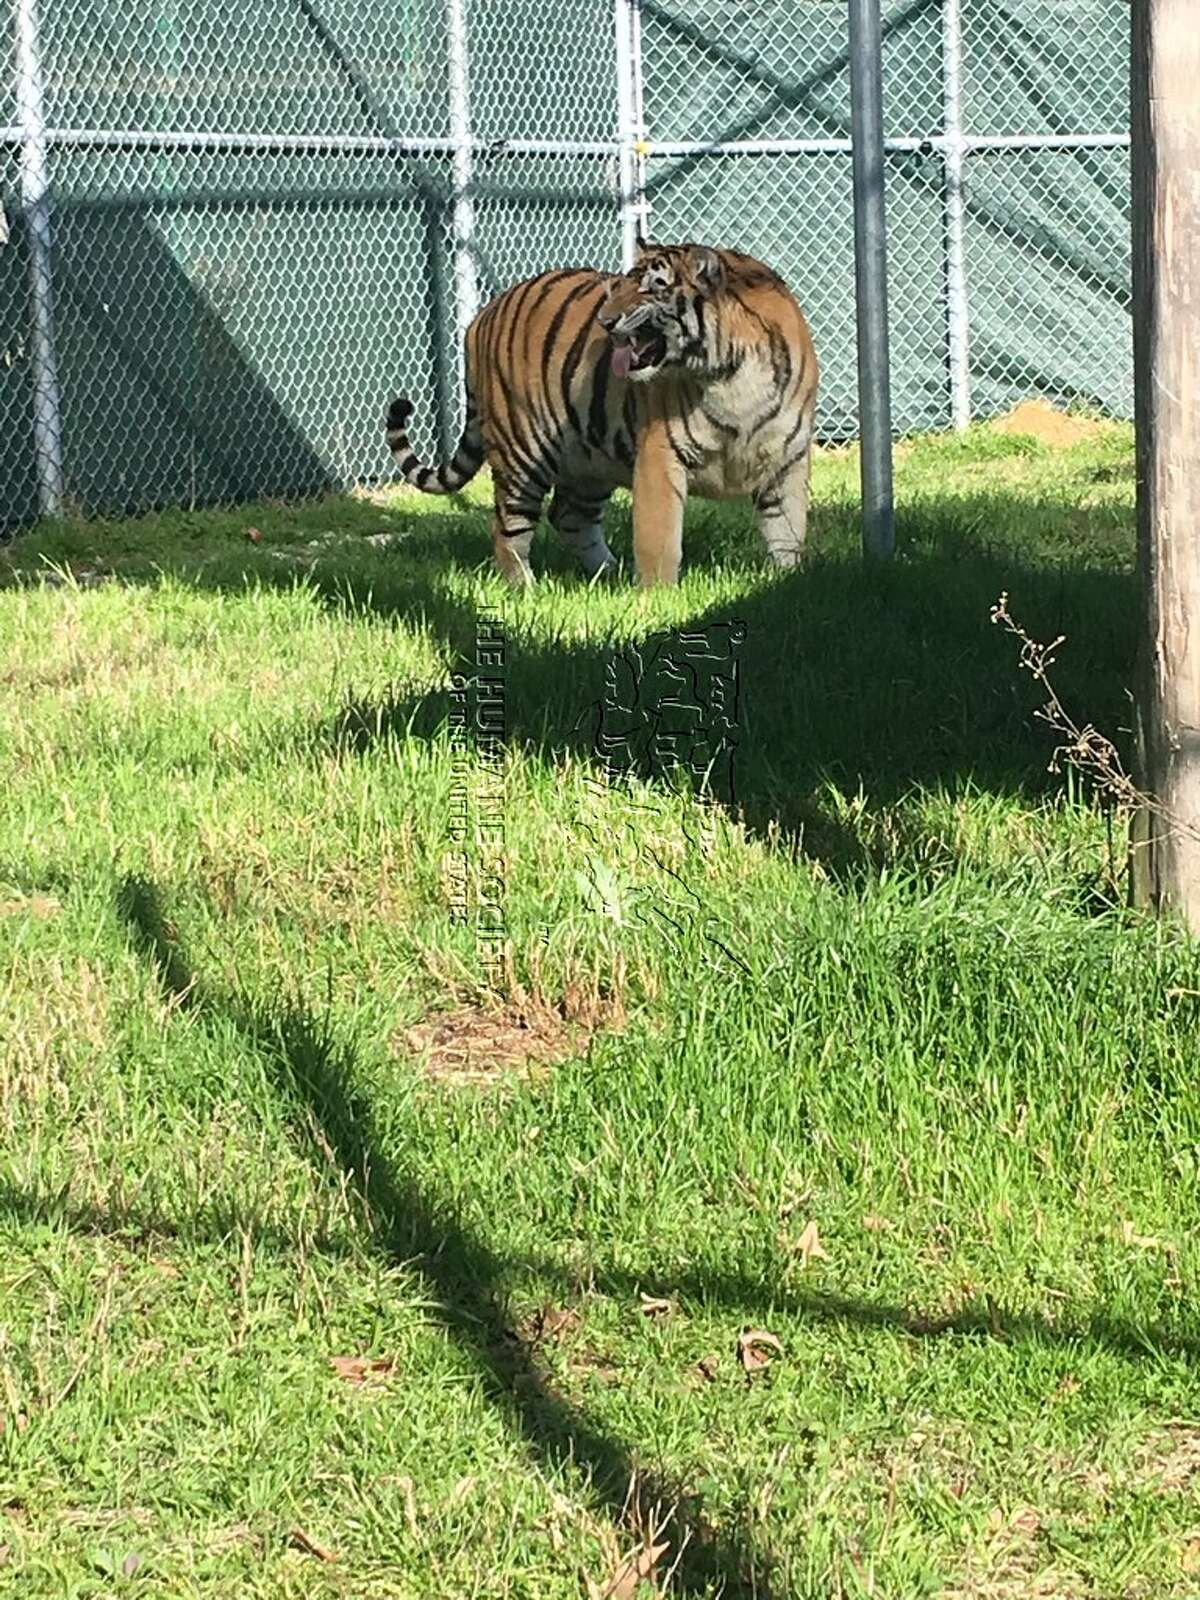 Tyson, the tiger found caged inside a southeast Houston home, is seen at theCleveland Amory Black Beauty Ranch south of Dallas on Wednesday, Feb. 13, 2019.